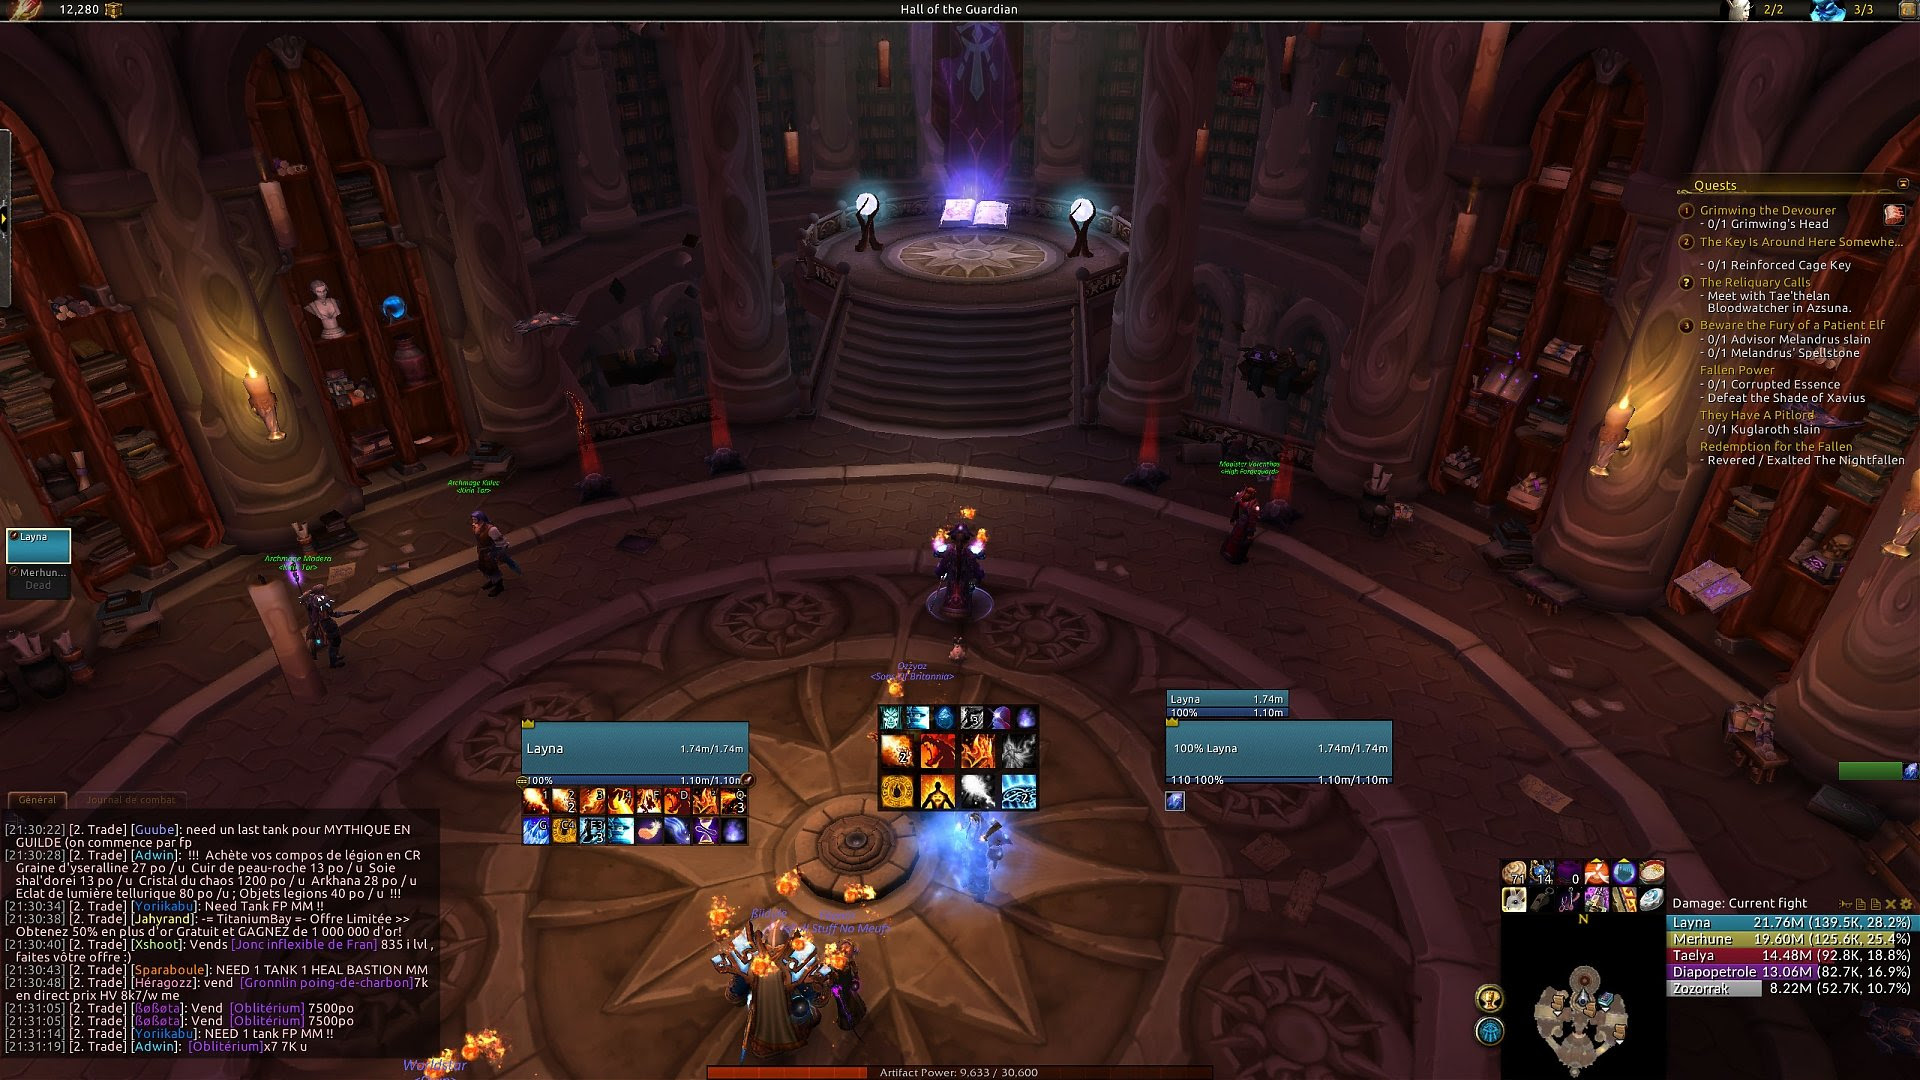 Layna Ui Graphical Compilations World Of Warcraft Addons Images, Photos, Reviews